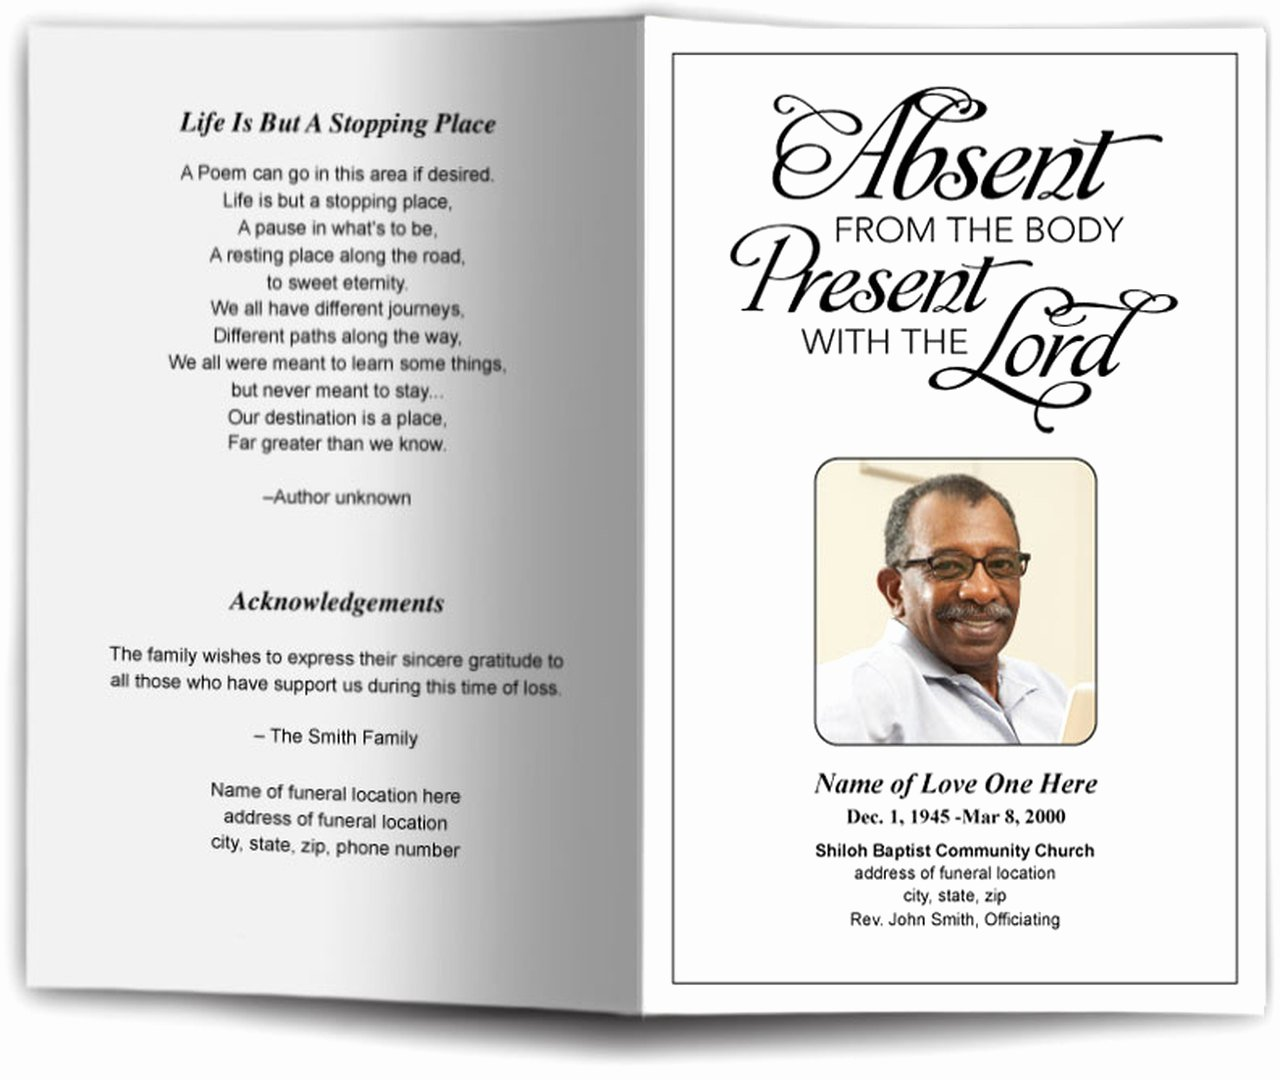 Funeral Program Template Free Lovely Present Funeral Program Template